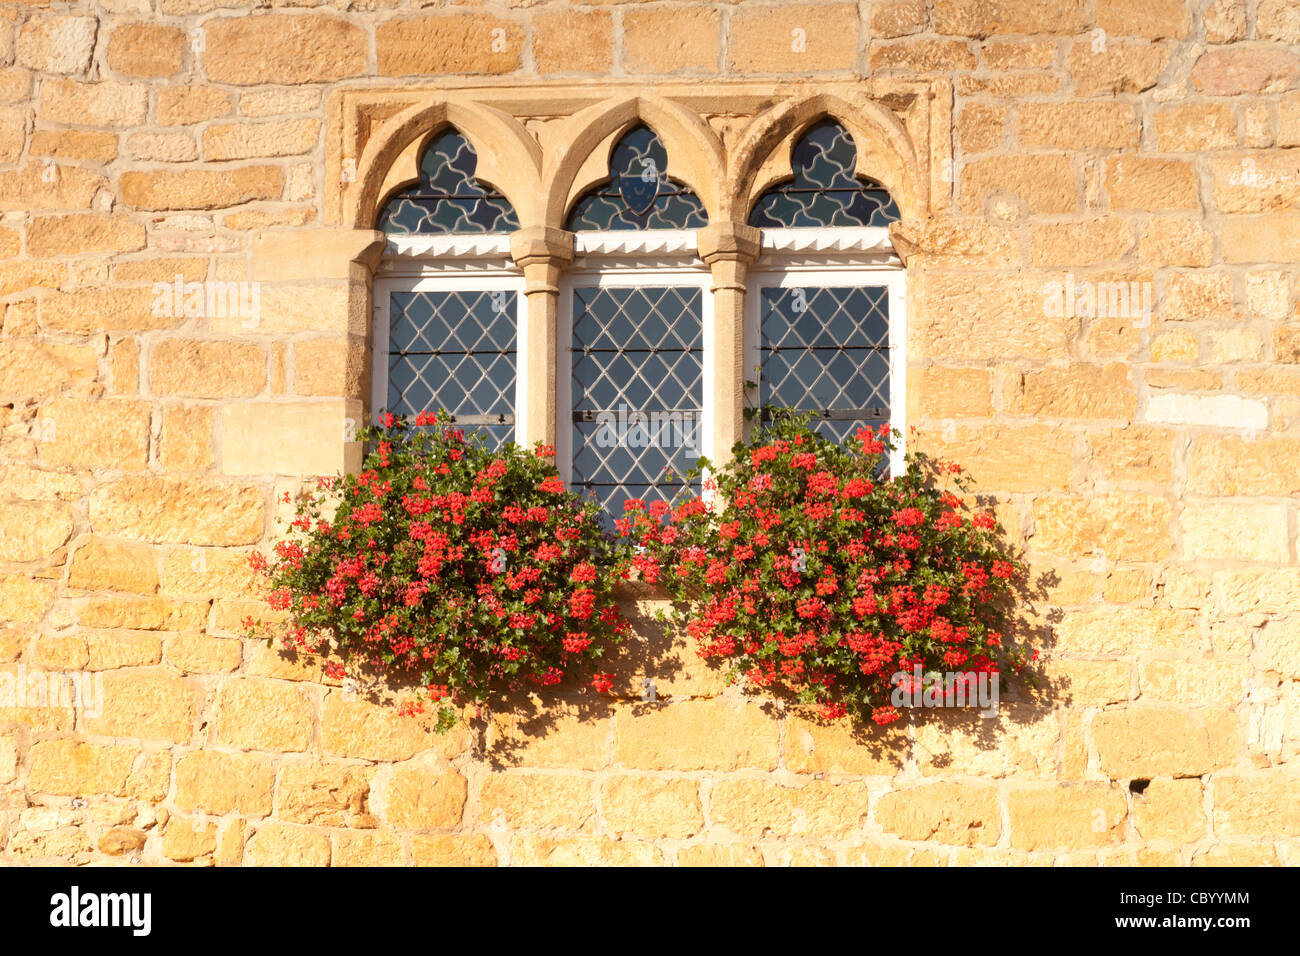 Geraniums in window boxes at the Tourist Information Office in the village of Domme, Aquitaine, France. - Stock Image